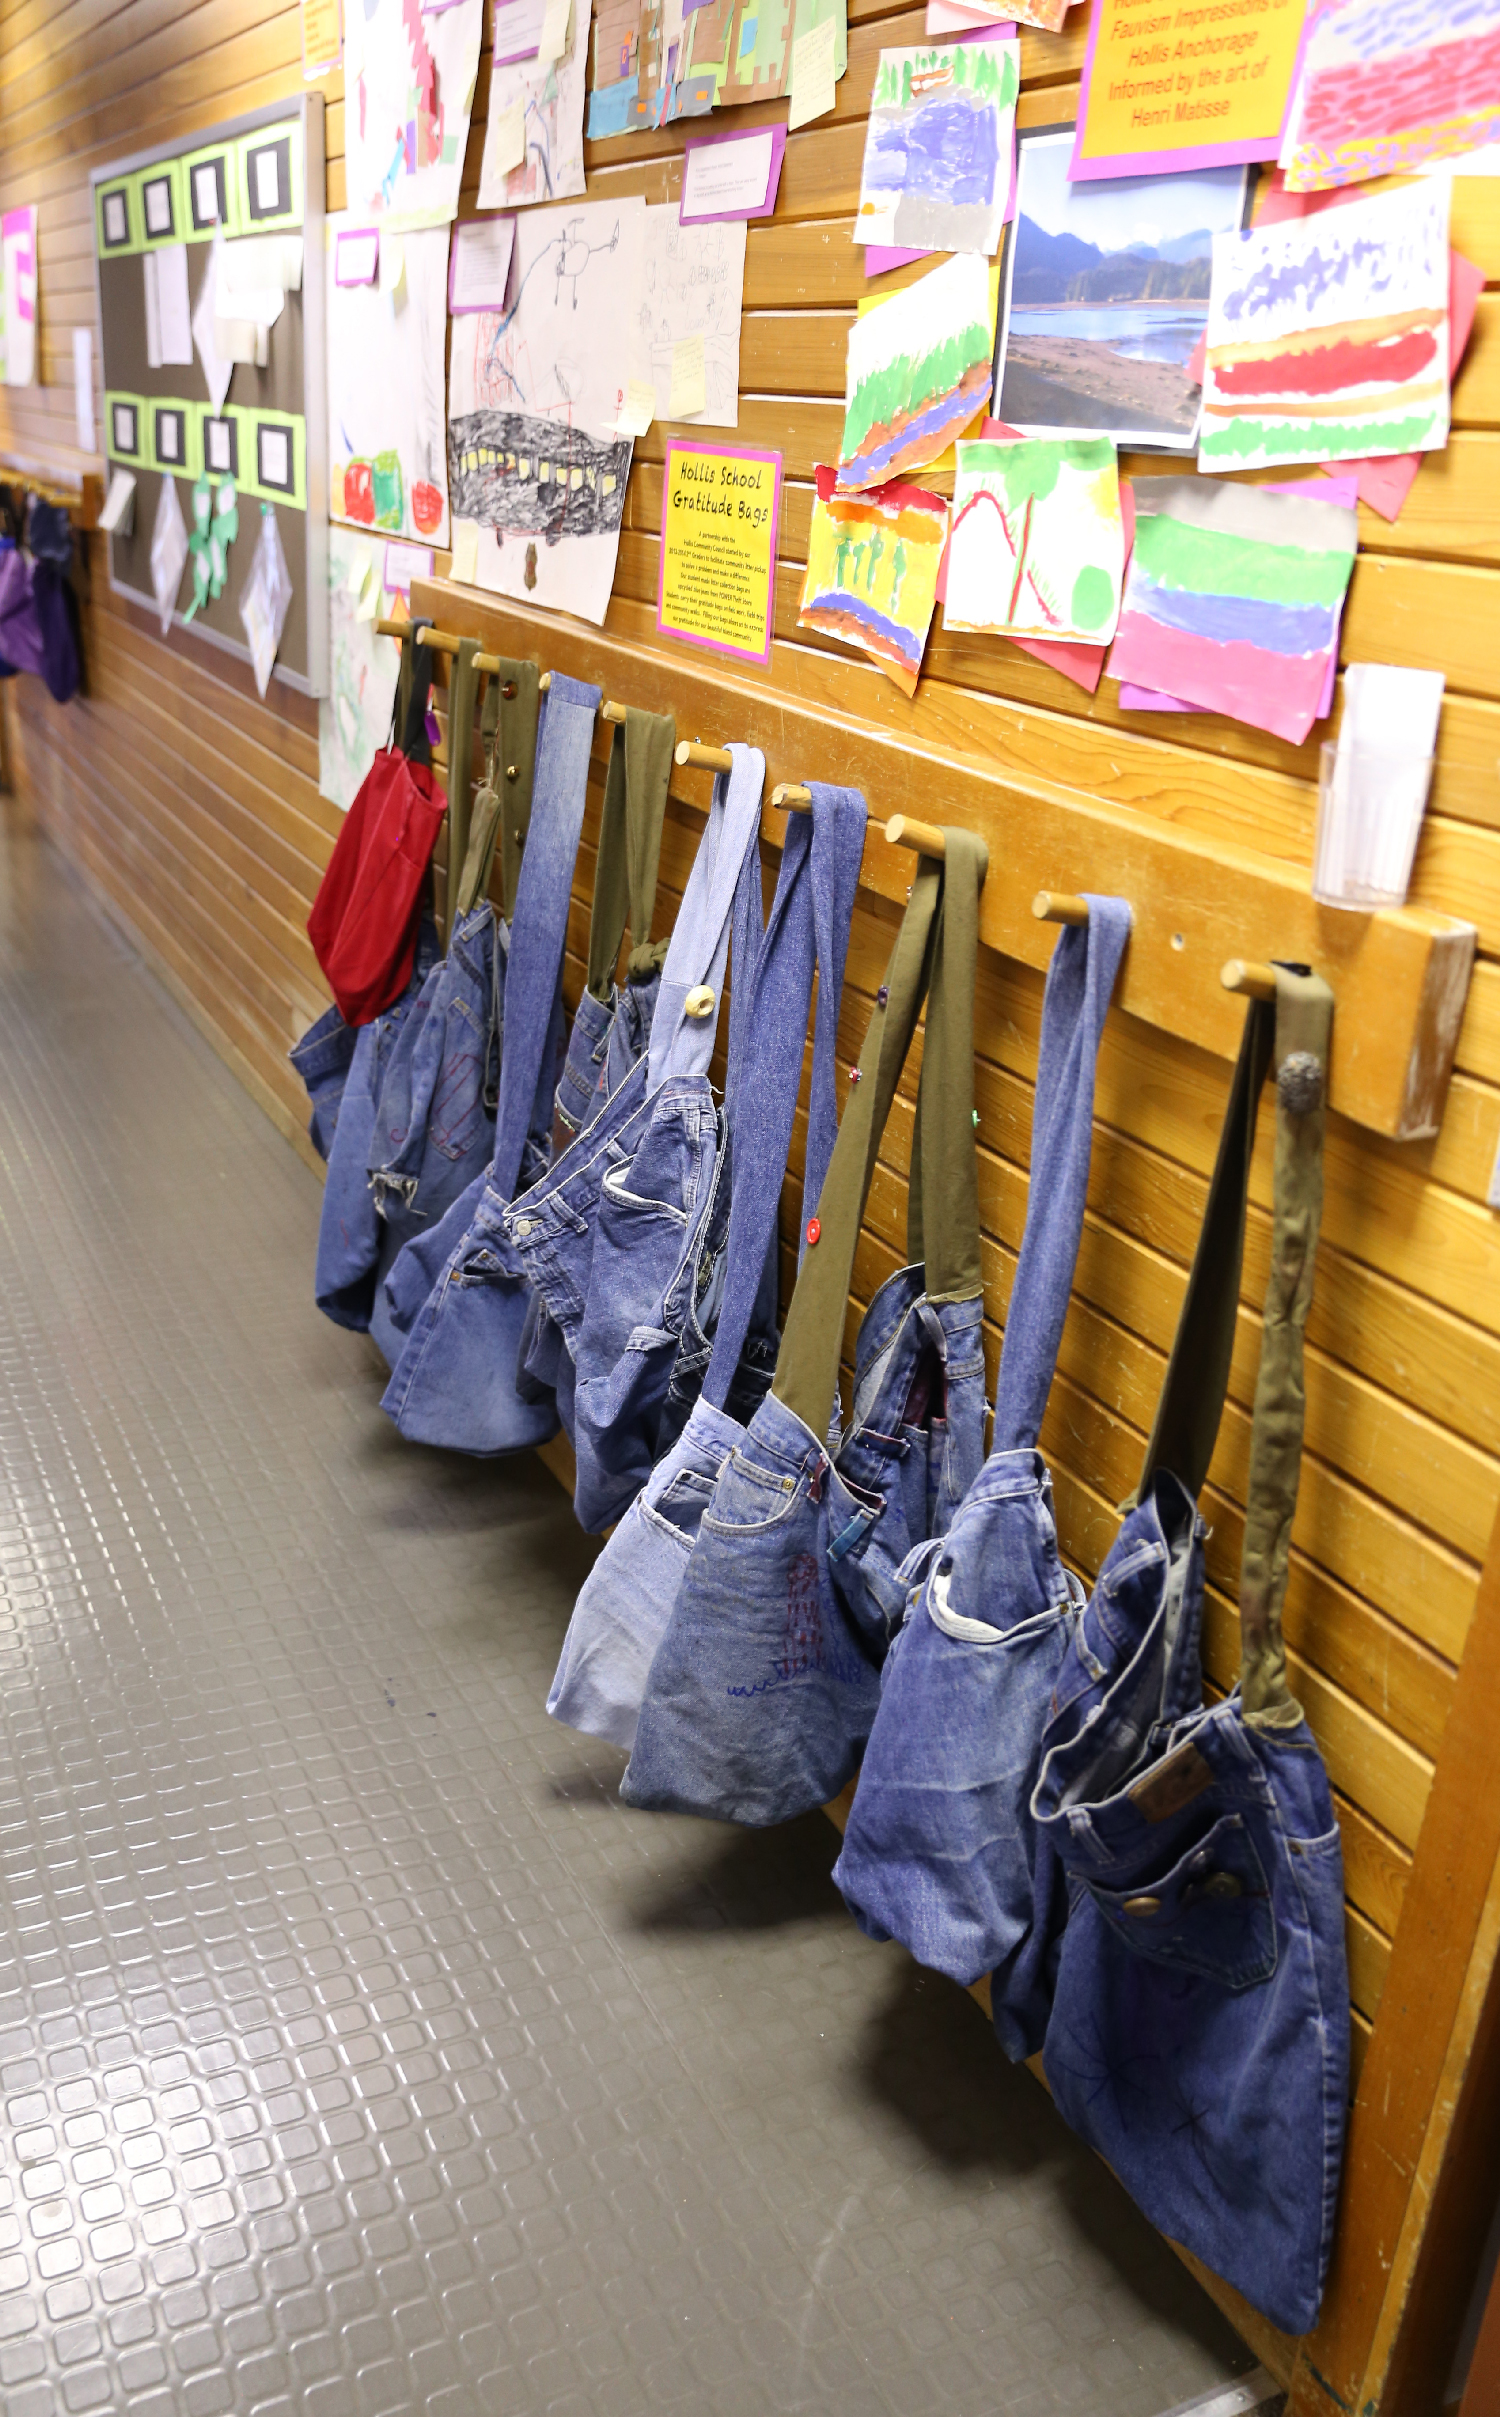 The students grab up their Gratitude Bags to collect litter in when they are outside for field work and field trips.